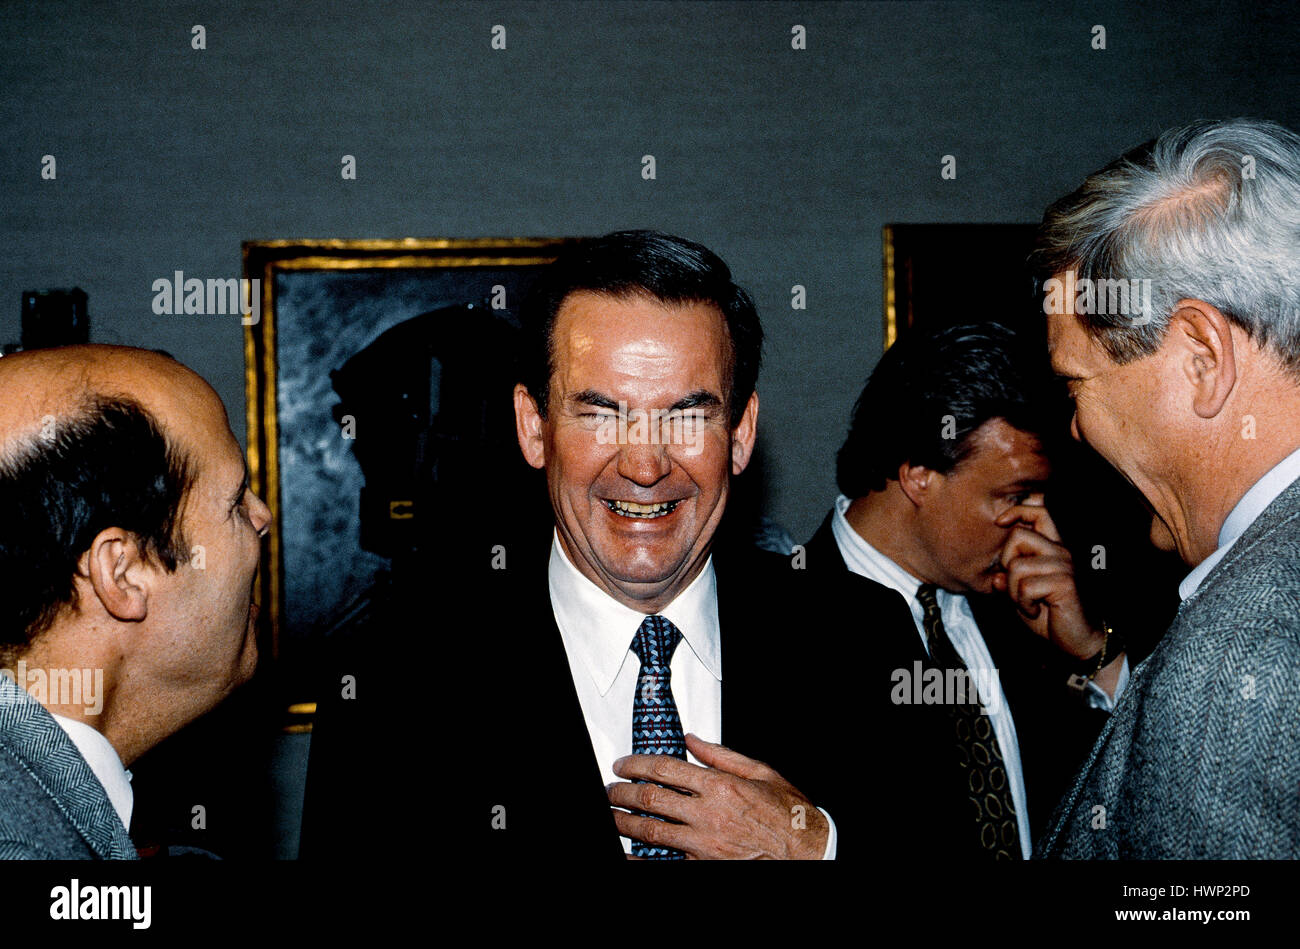 Republican Presidential candidate Pat Buchanan answers reporters questions during a news conference Washington DC., - Stock Image